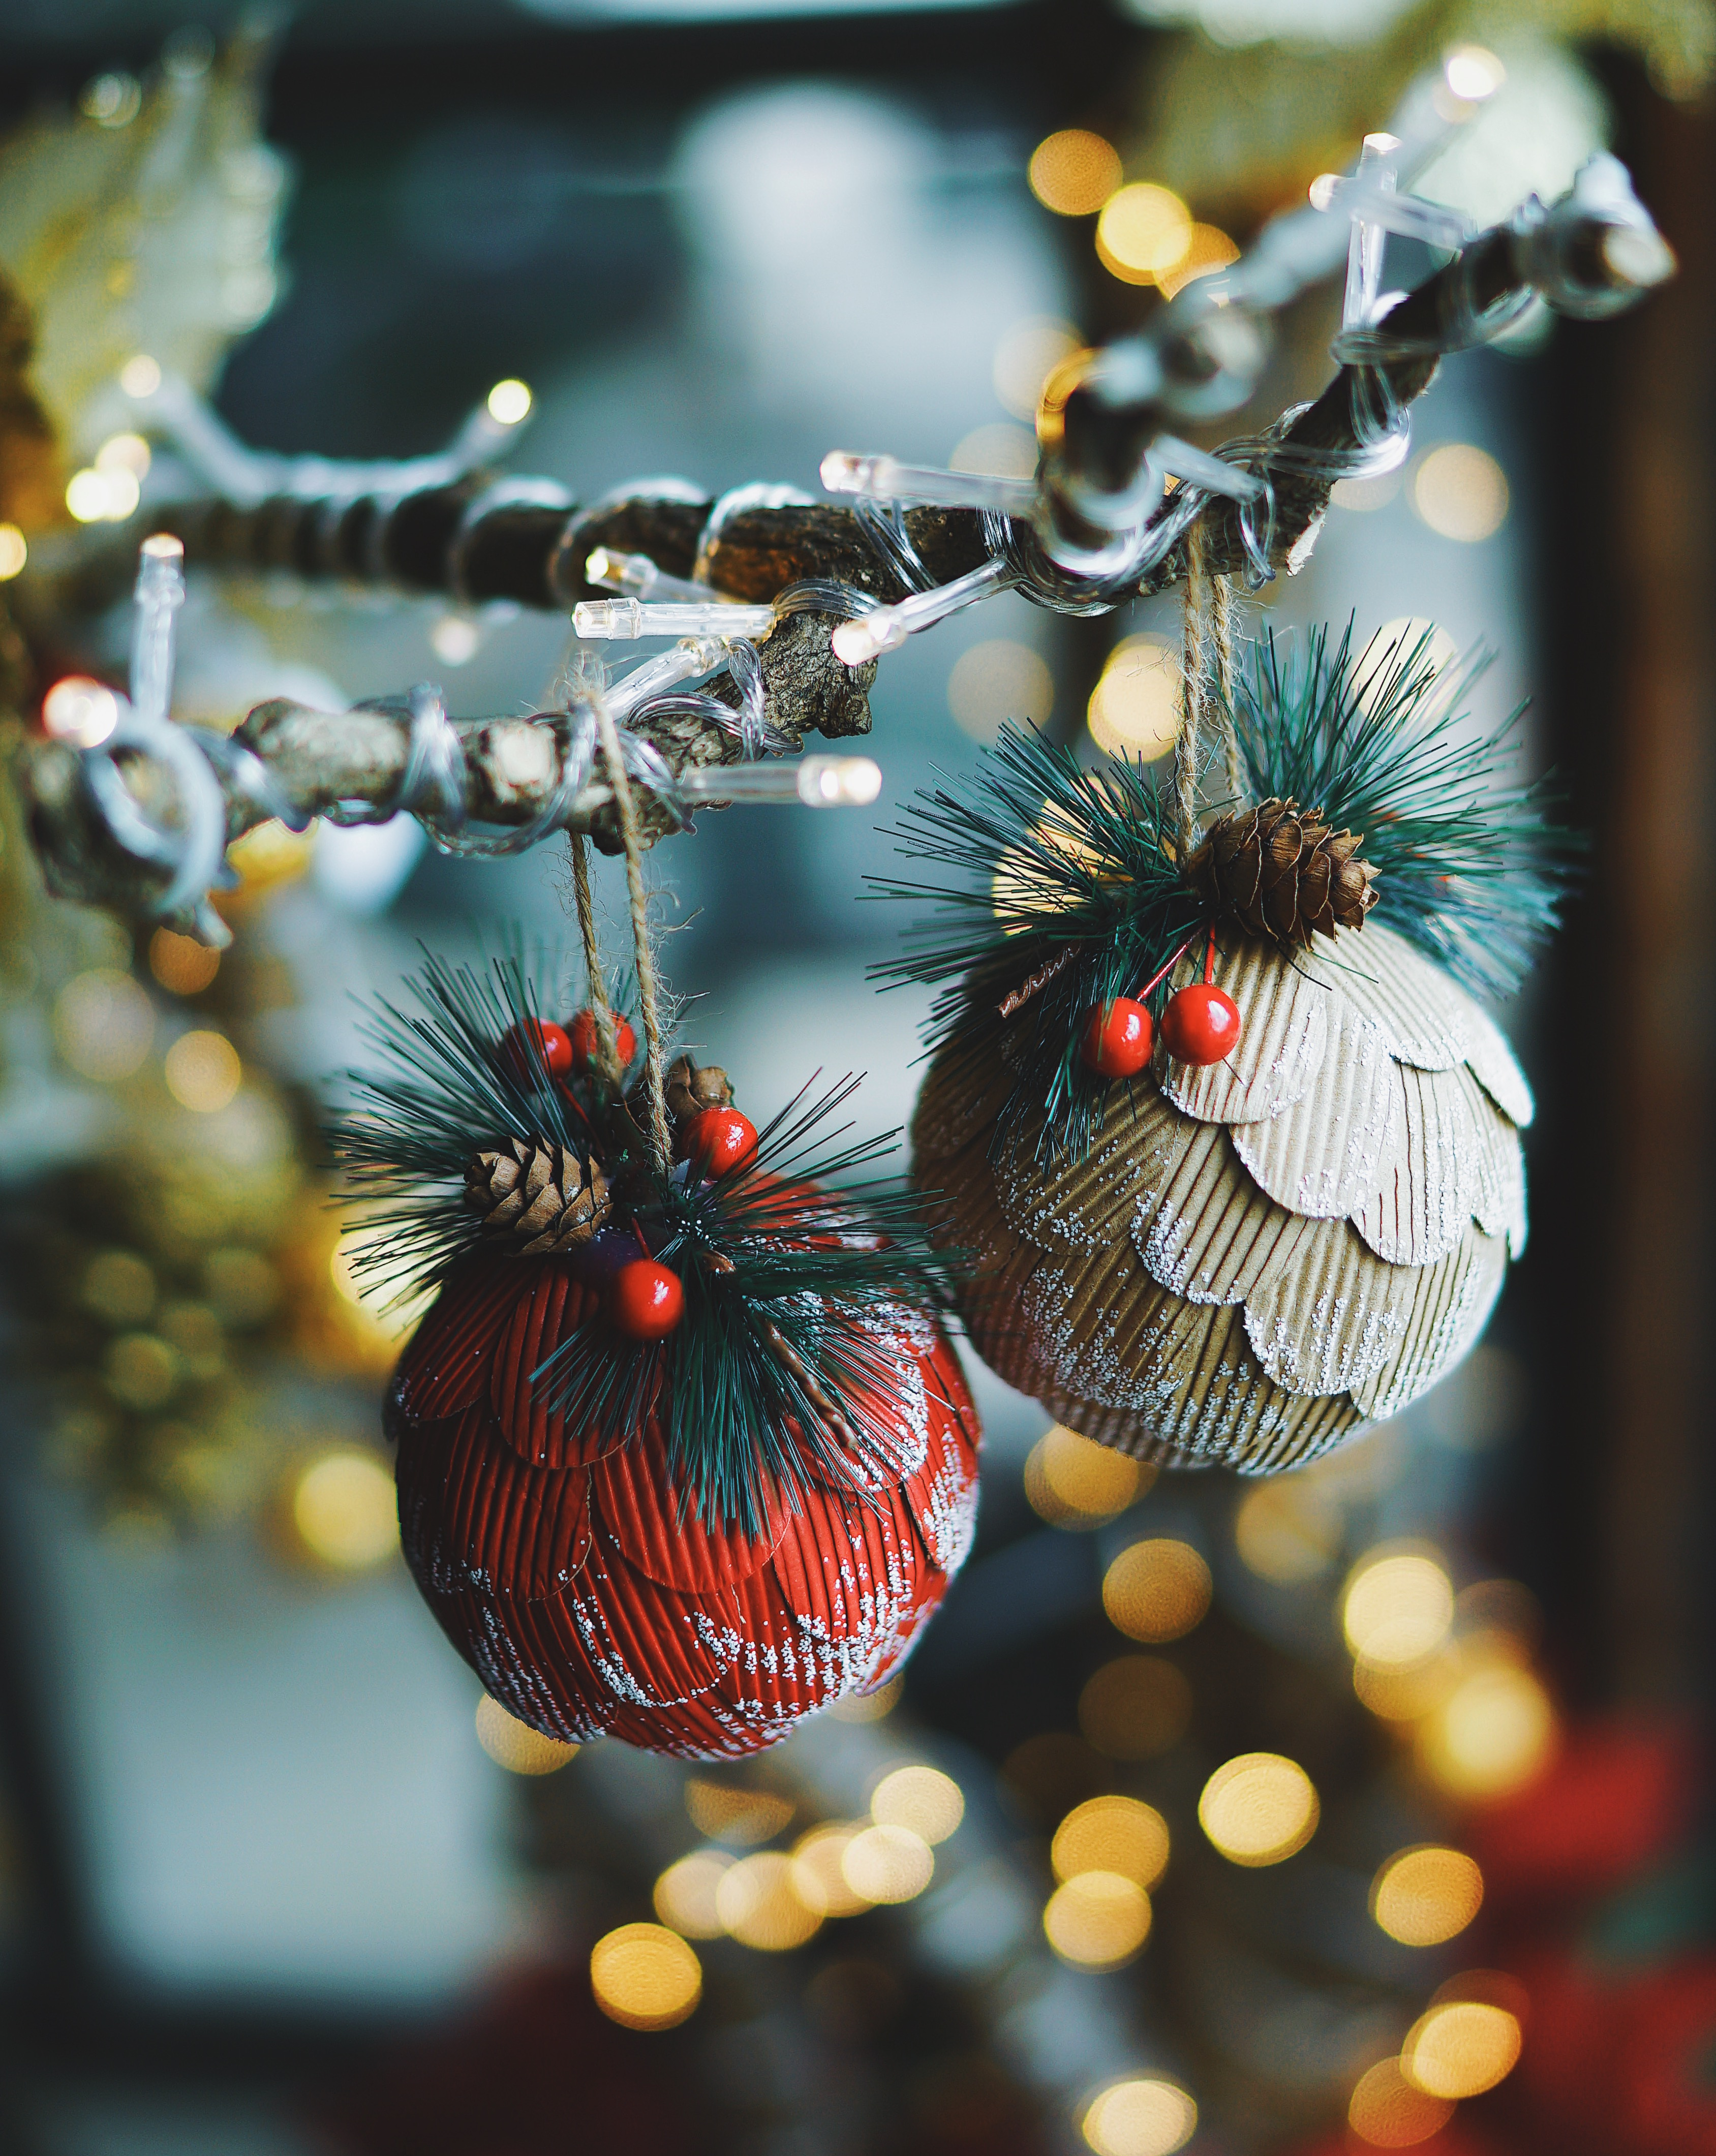 109088 download wallpaper Holidays, New Year, Glare, Christmas, Christmas Decorations, Christmas Tree Toys, Decoration screensavers and pictures for free